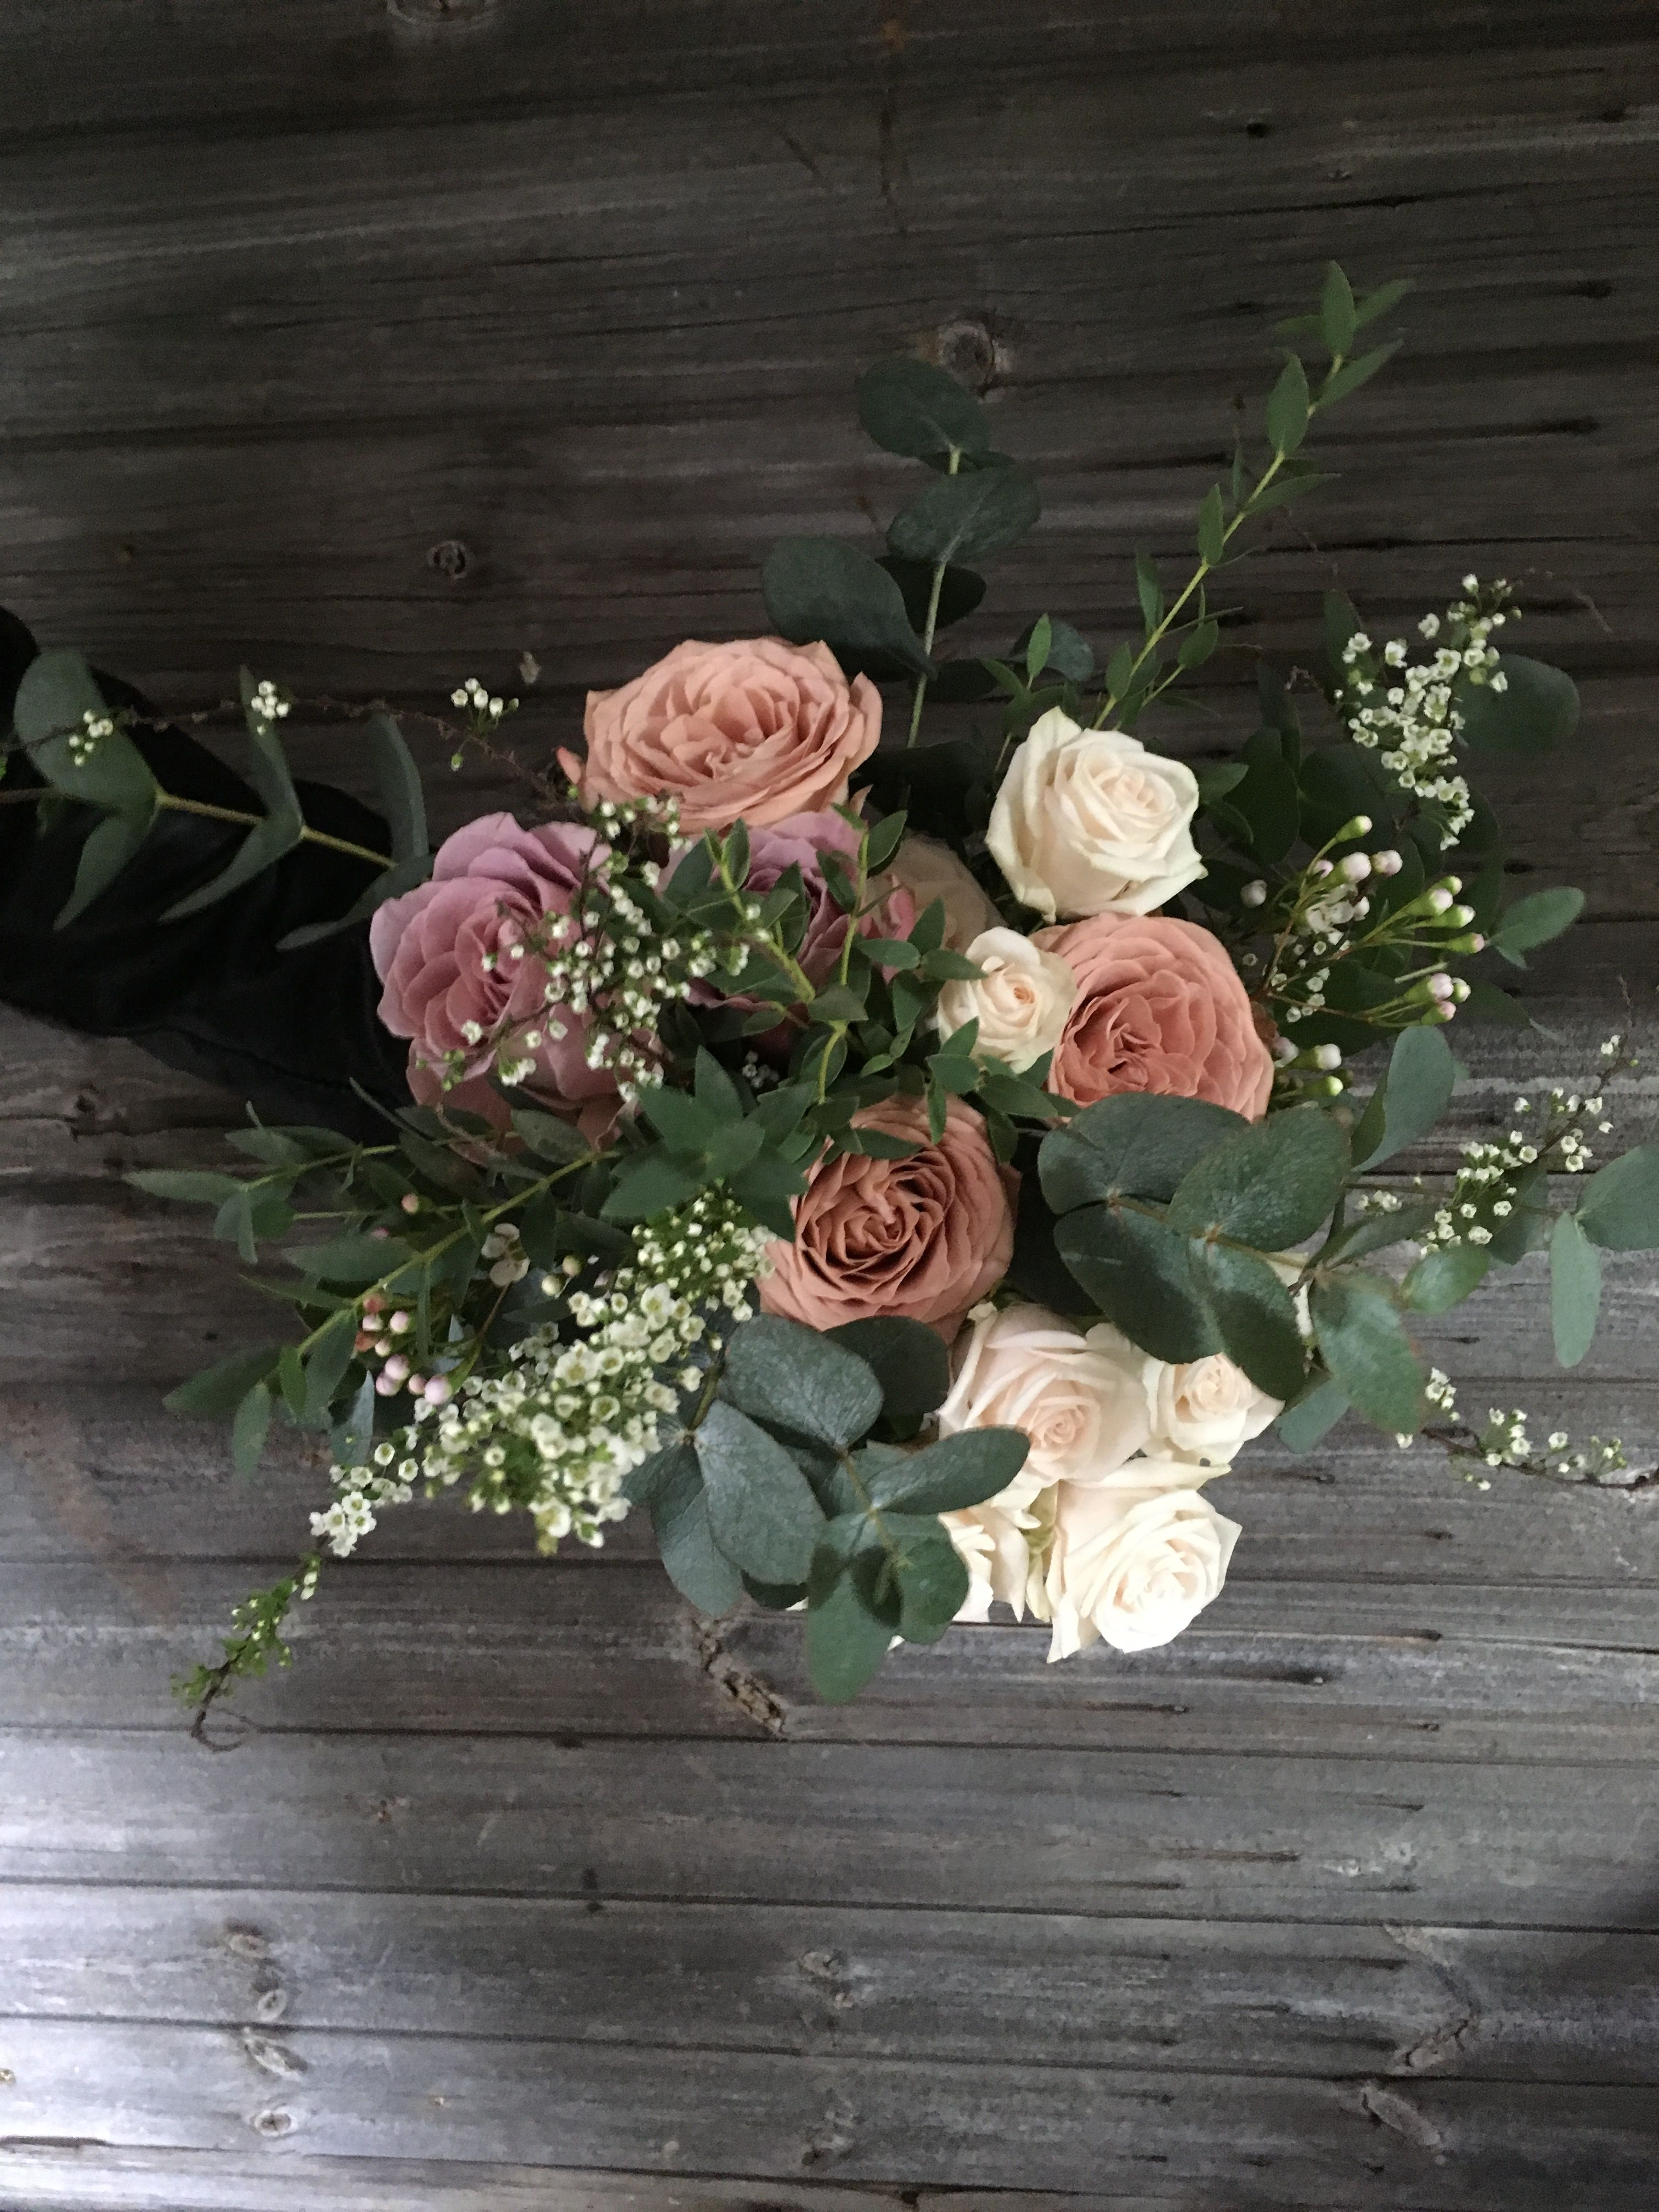 Rustic Bridesmaid Bouquet With Soft Subtle Hues Using Cappucino Rose,